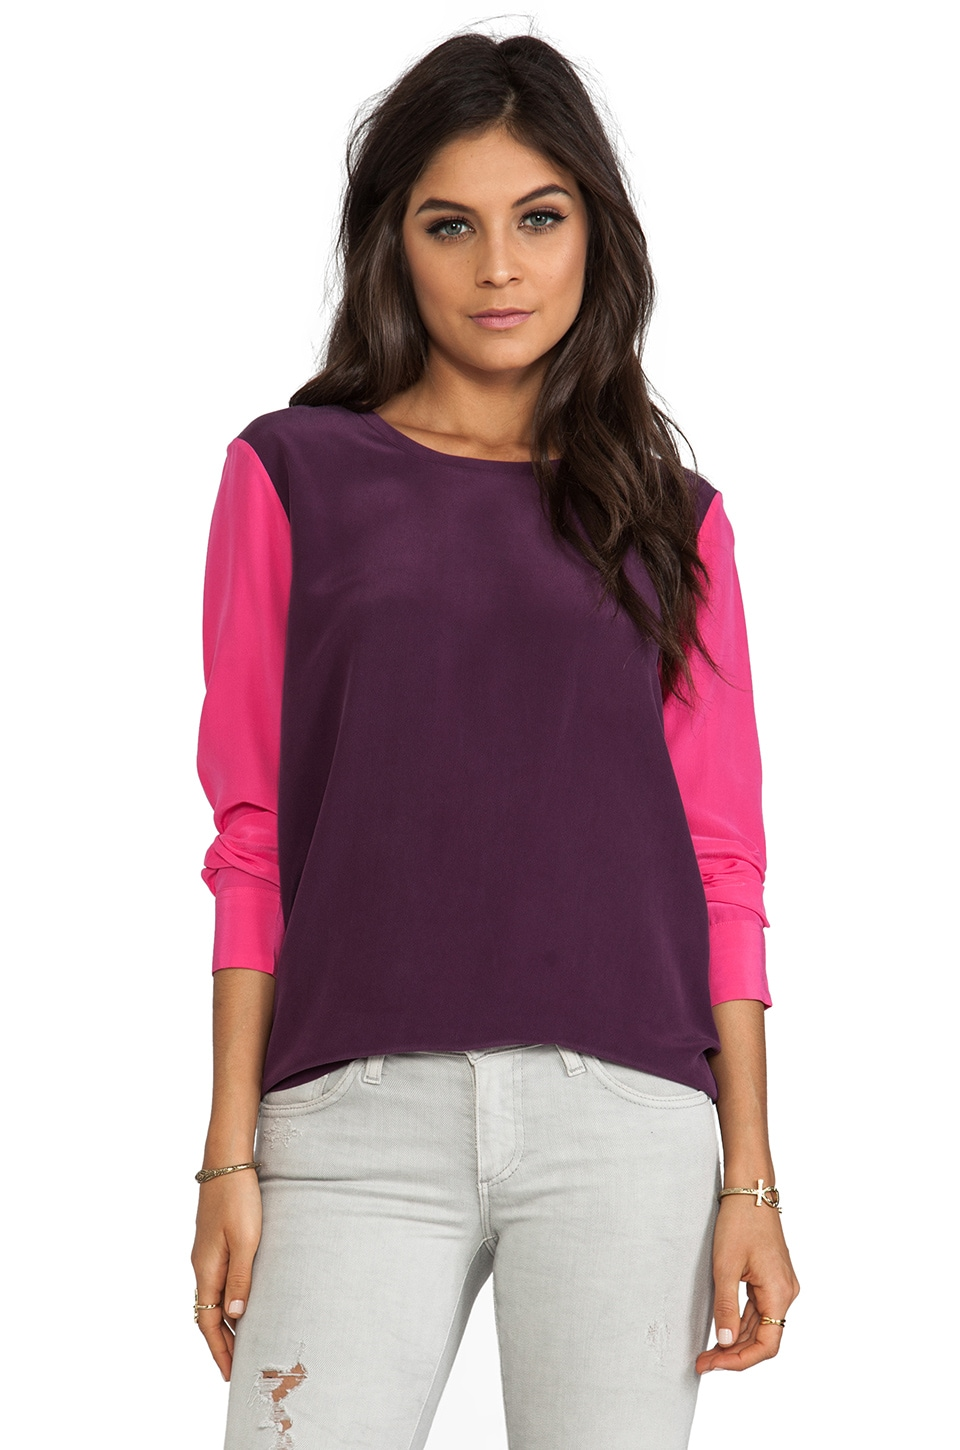 Equipment Colorblock Liam Blouse with Contrast Sleeves in Cabernet/Fuchsia